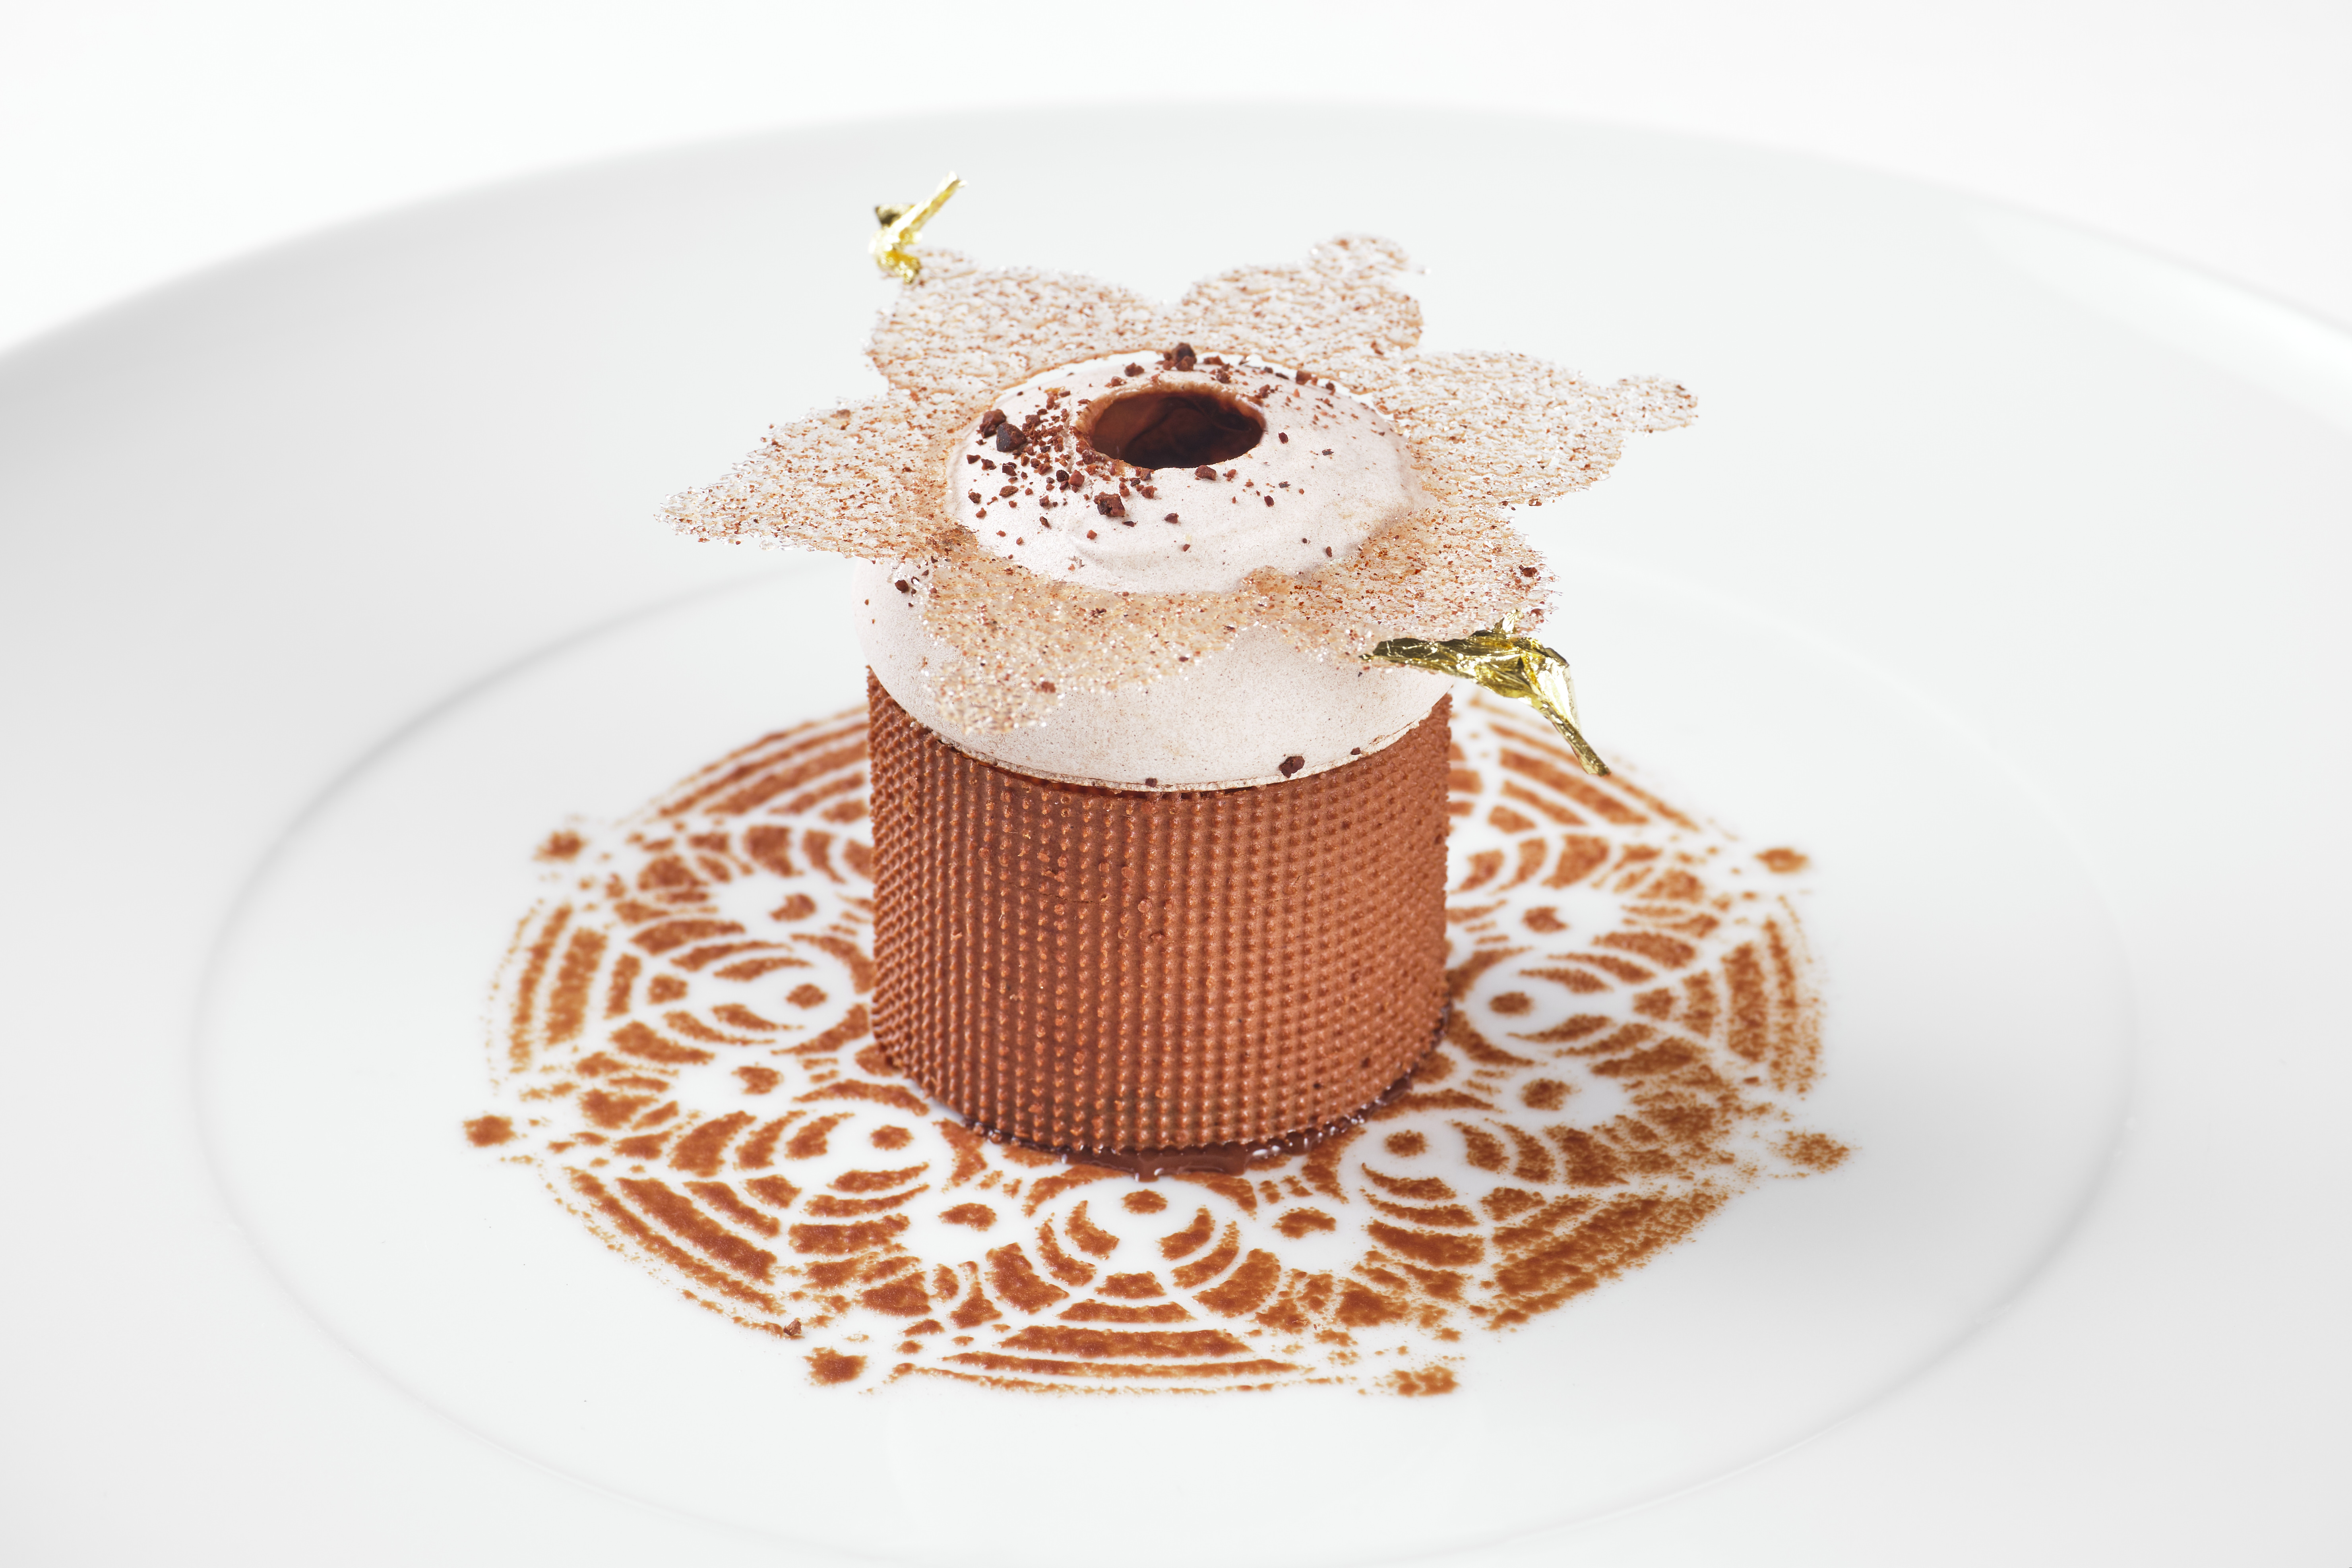 512/import-from-v1/images/Plat_Chef/2021/La_Fleur_chocolatee_2.jpg